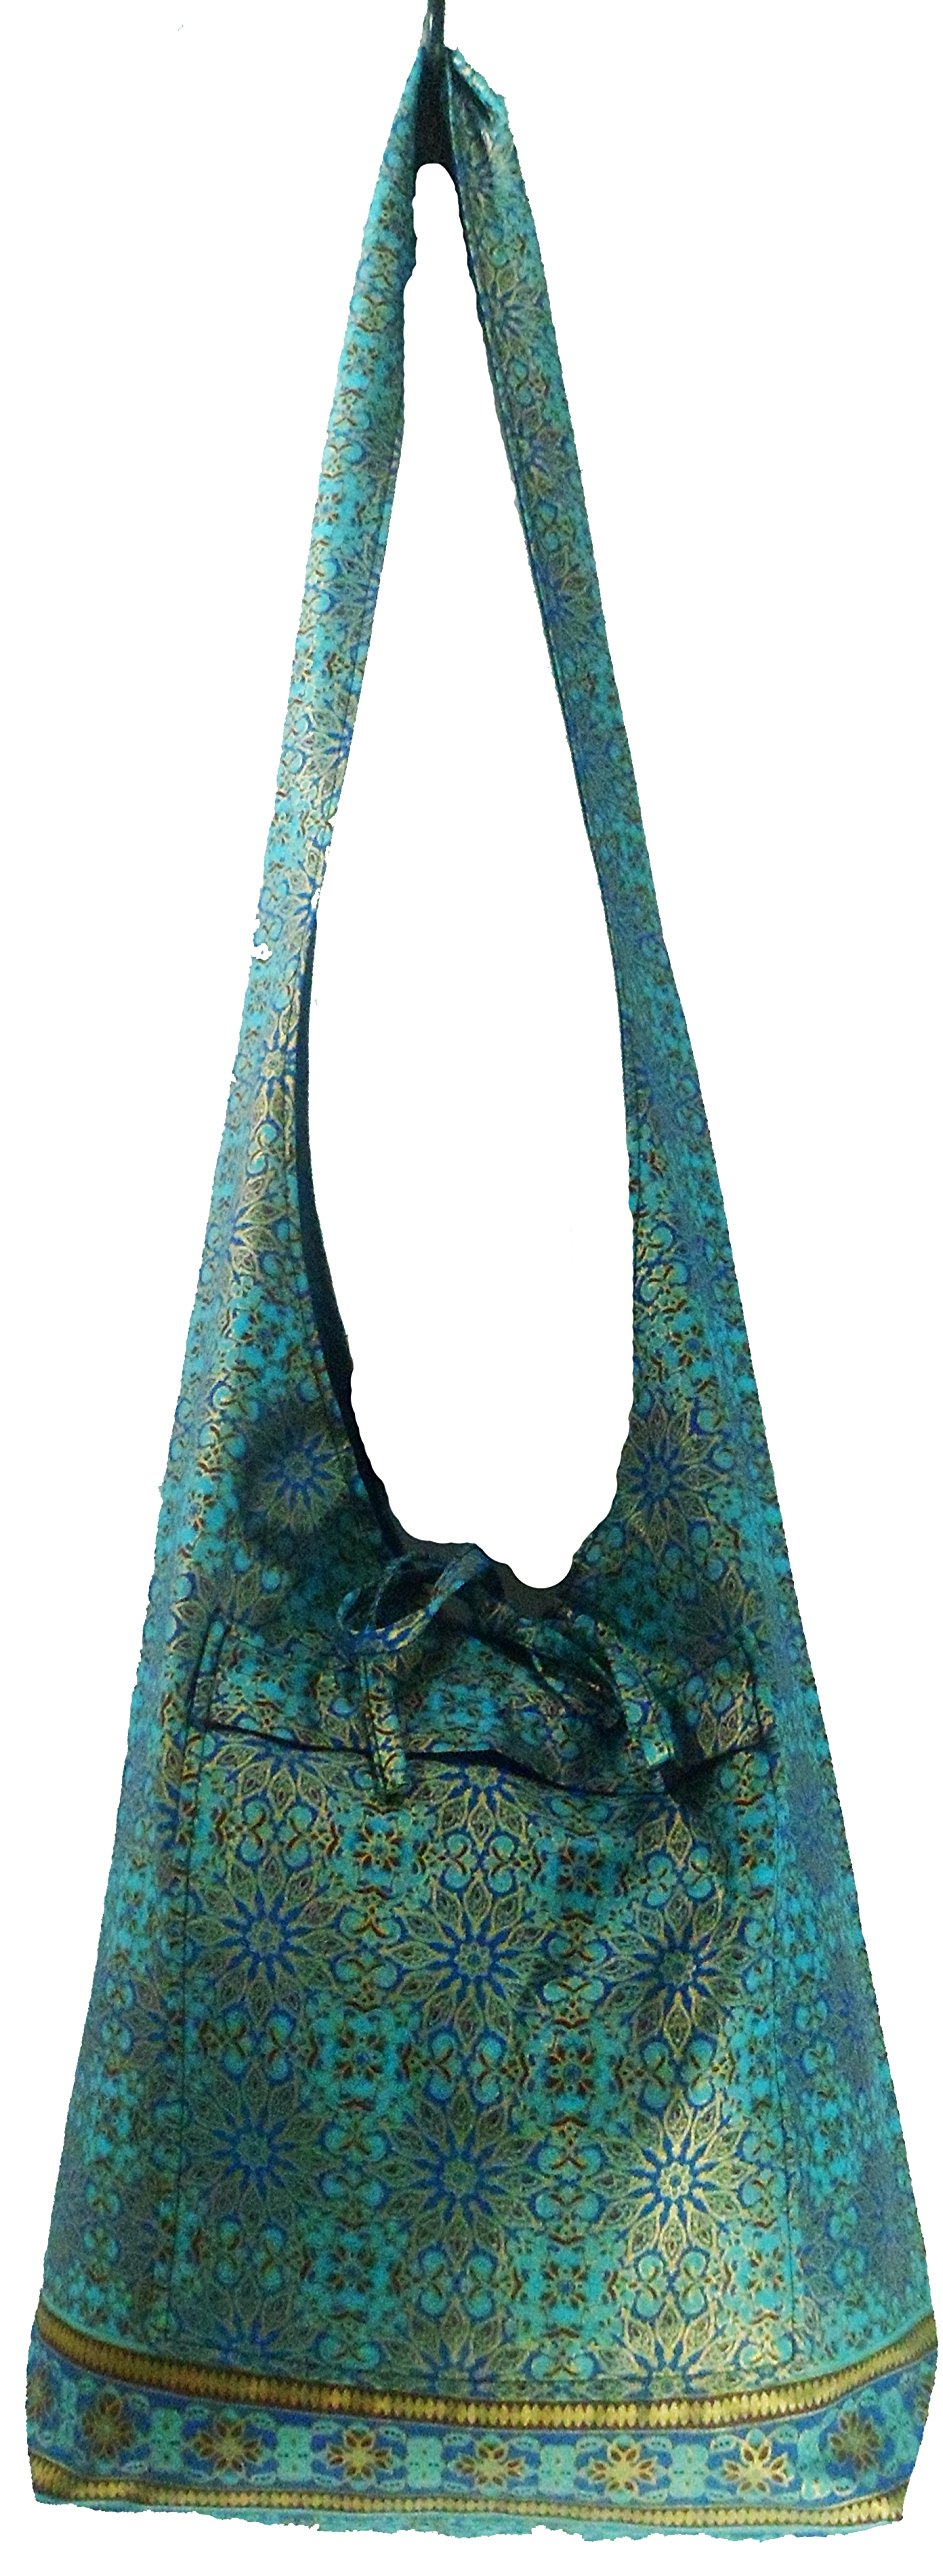 Rare Asian Hippie Hobo Cotton Sling Cross-body Handmade Bluethai Pattern Bag Shoulder Purse